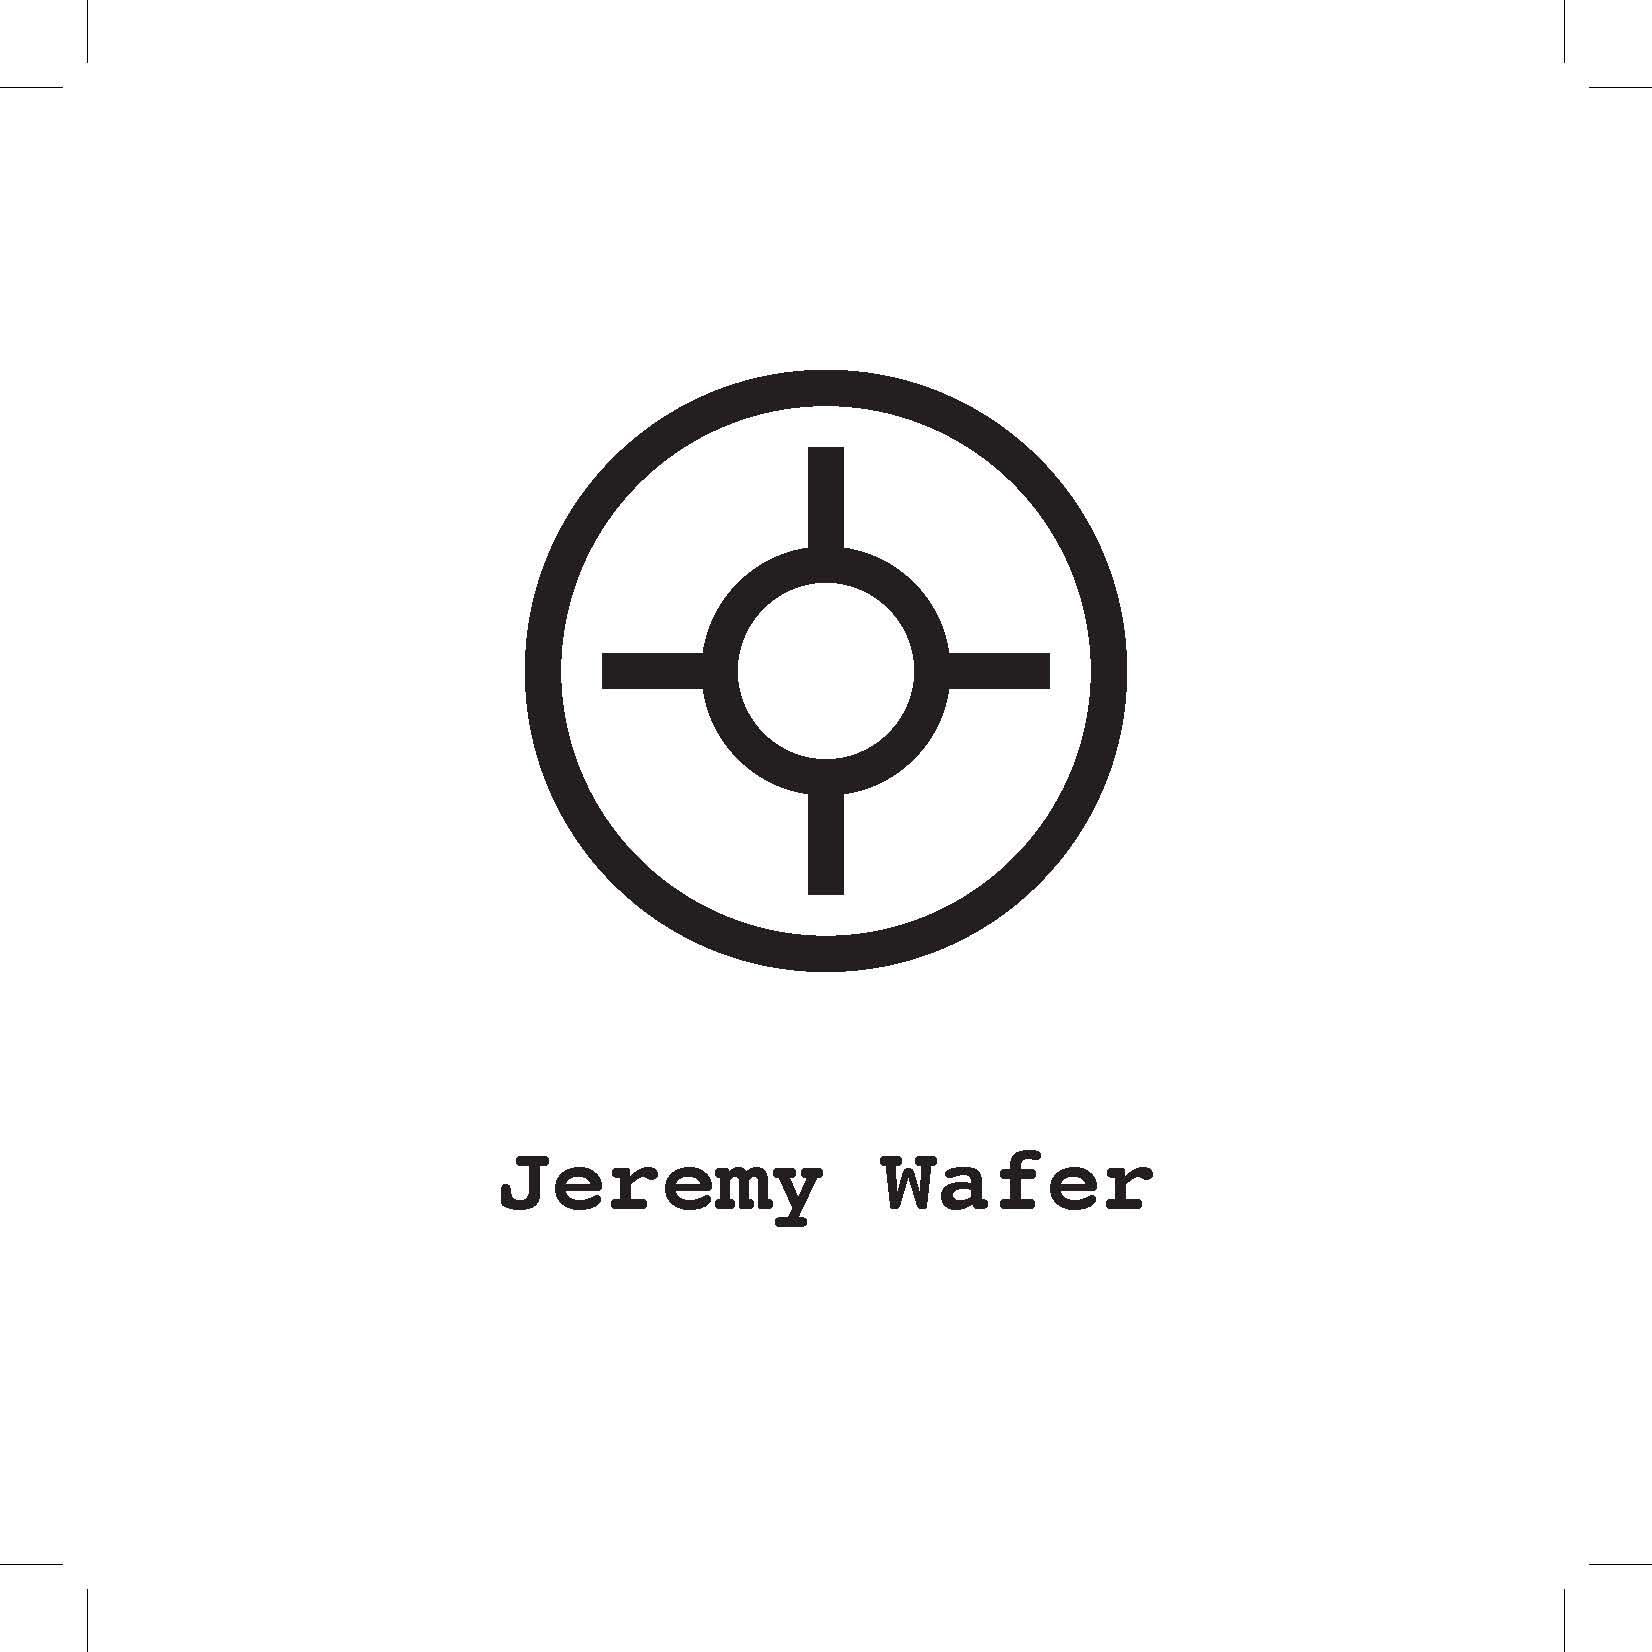 MAP Southafrica - Jeremy Wafer